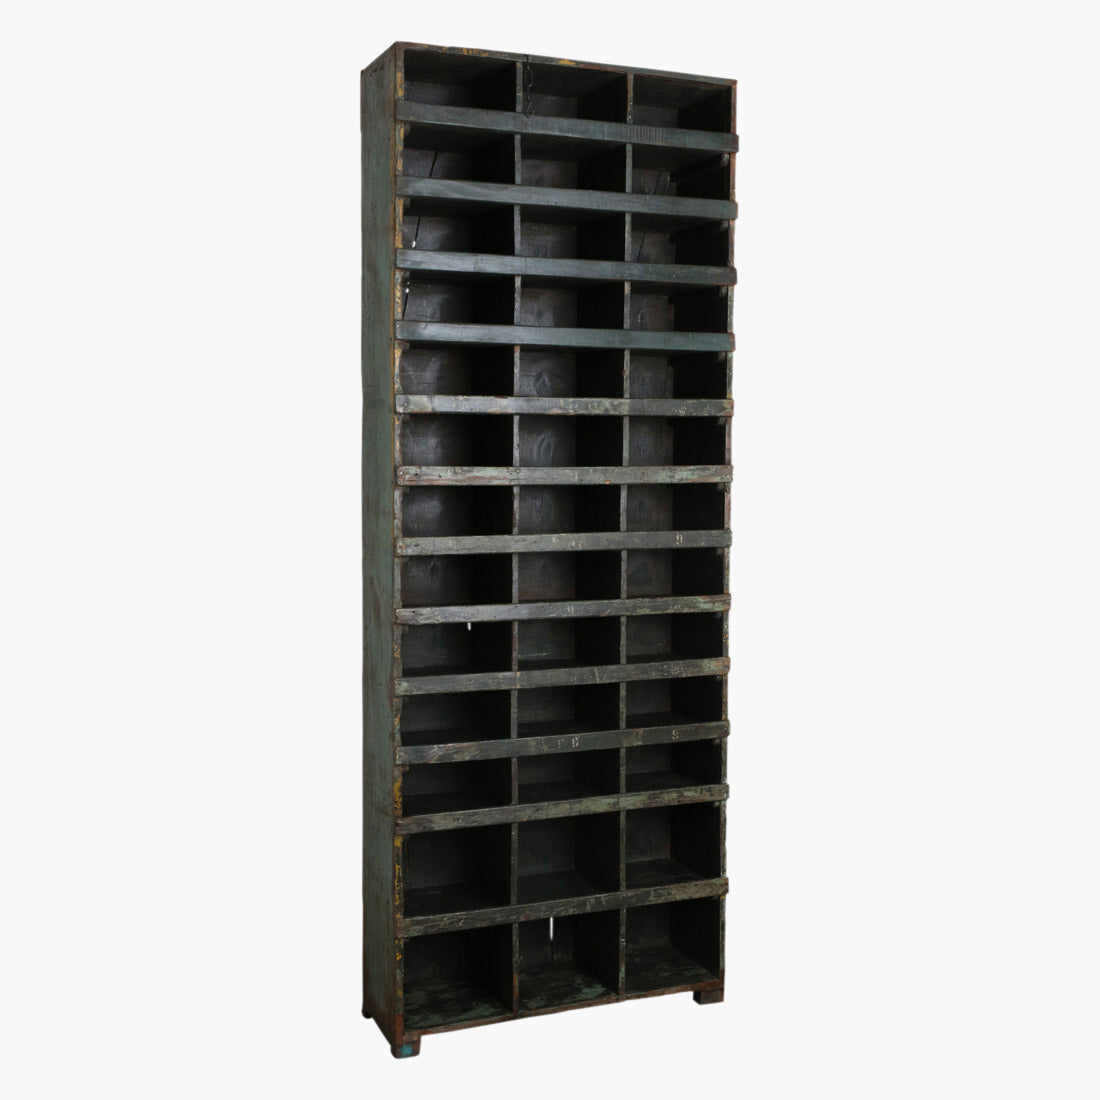 XL grey hardware store rack